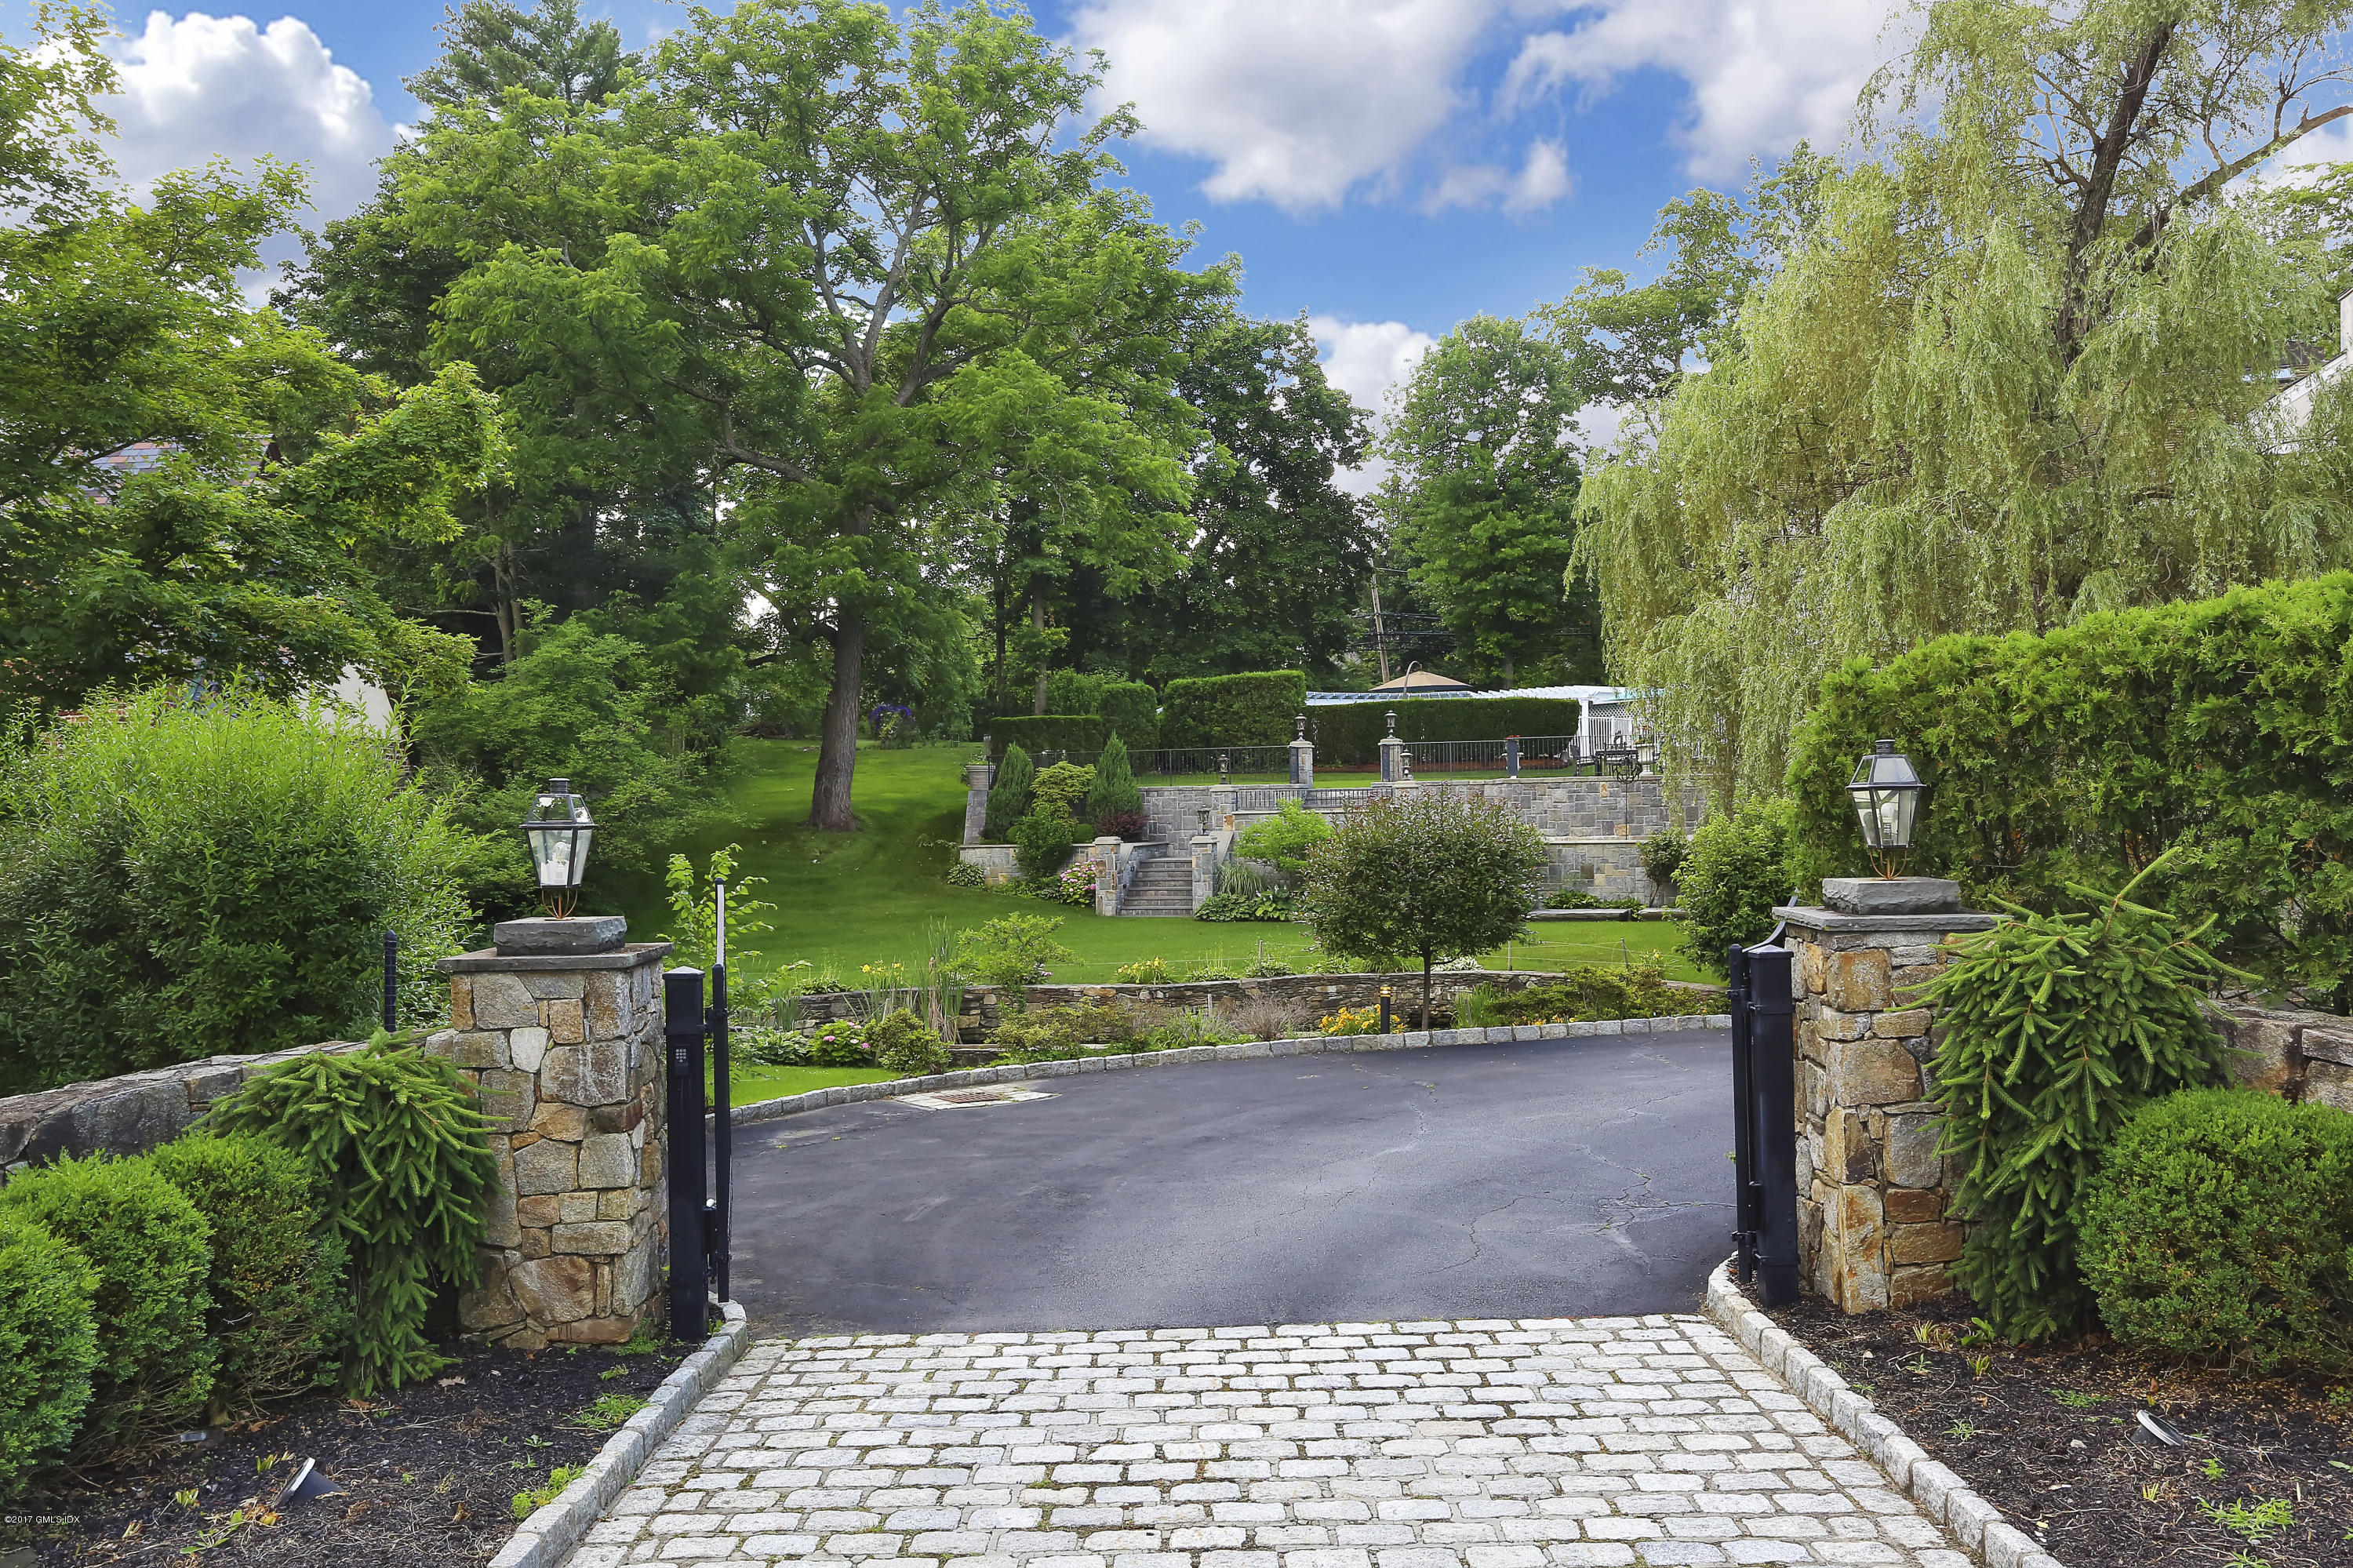 444 Old Church Road,Greenwich,Connecticut 06830,5 Bedrooms Bedrooms,6 BathroomsBathrooms,Single family,Old Church,99811